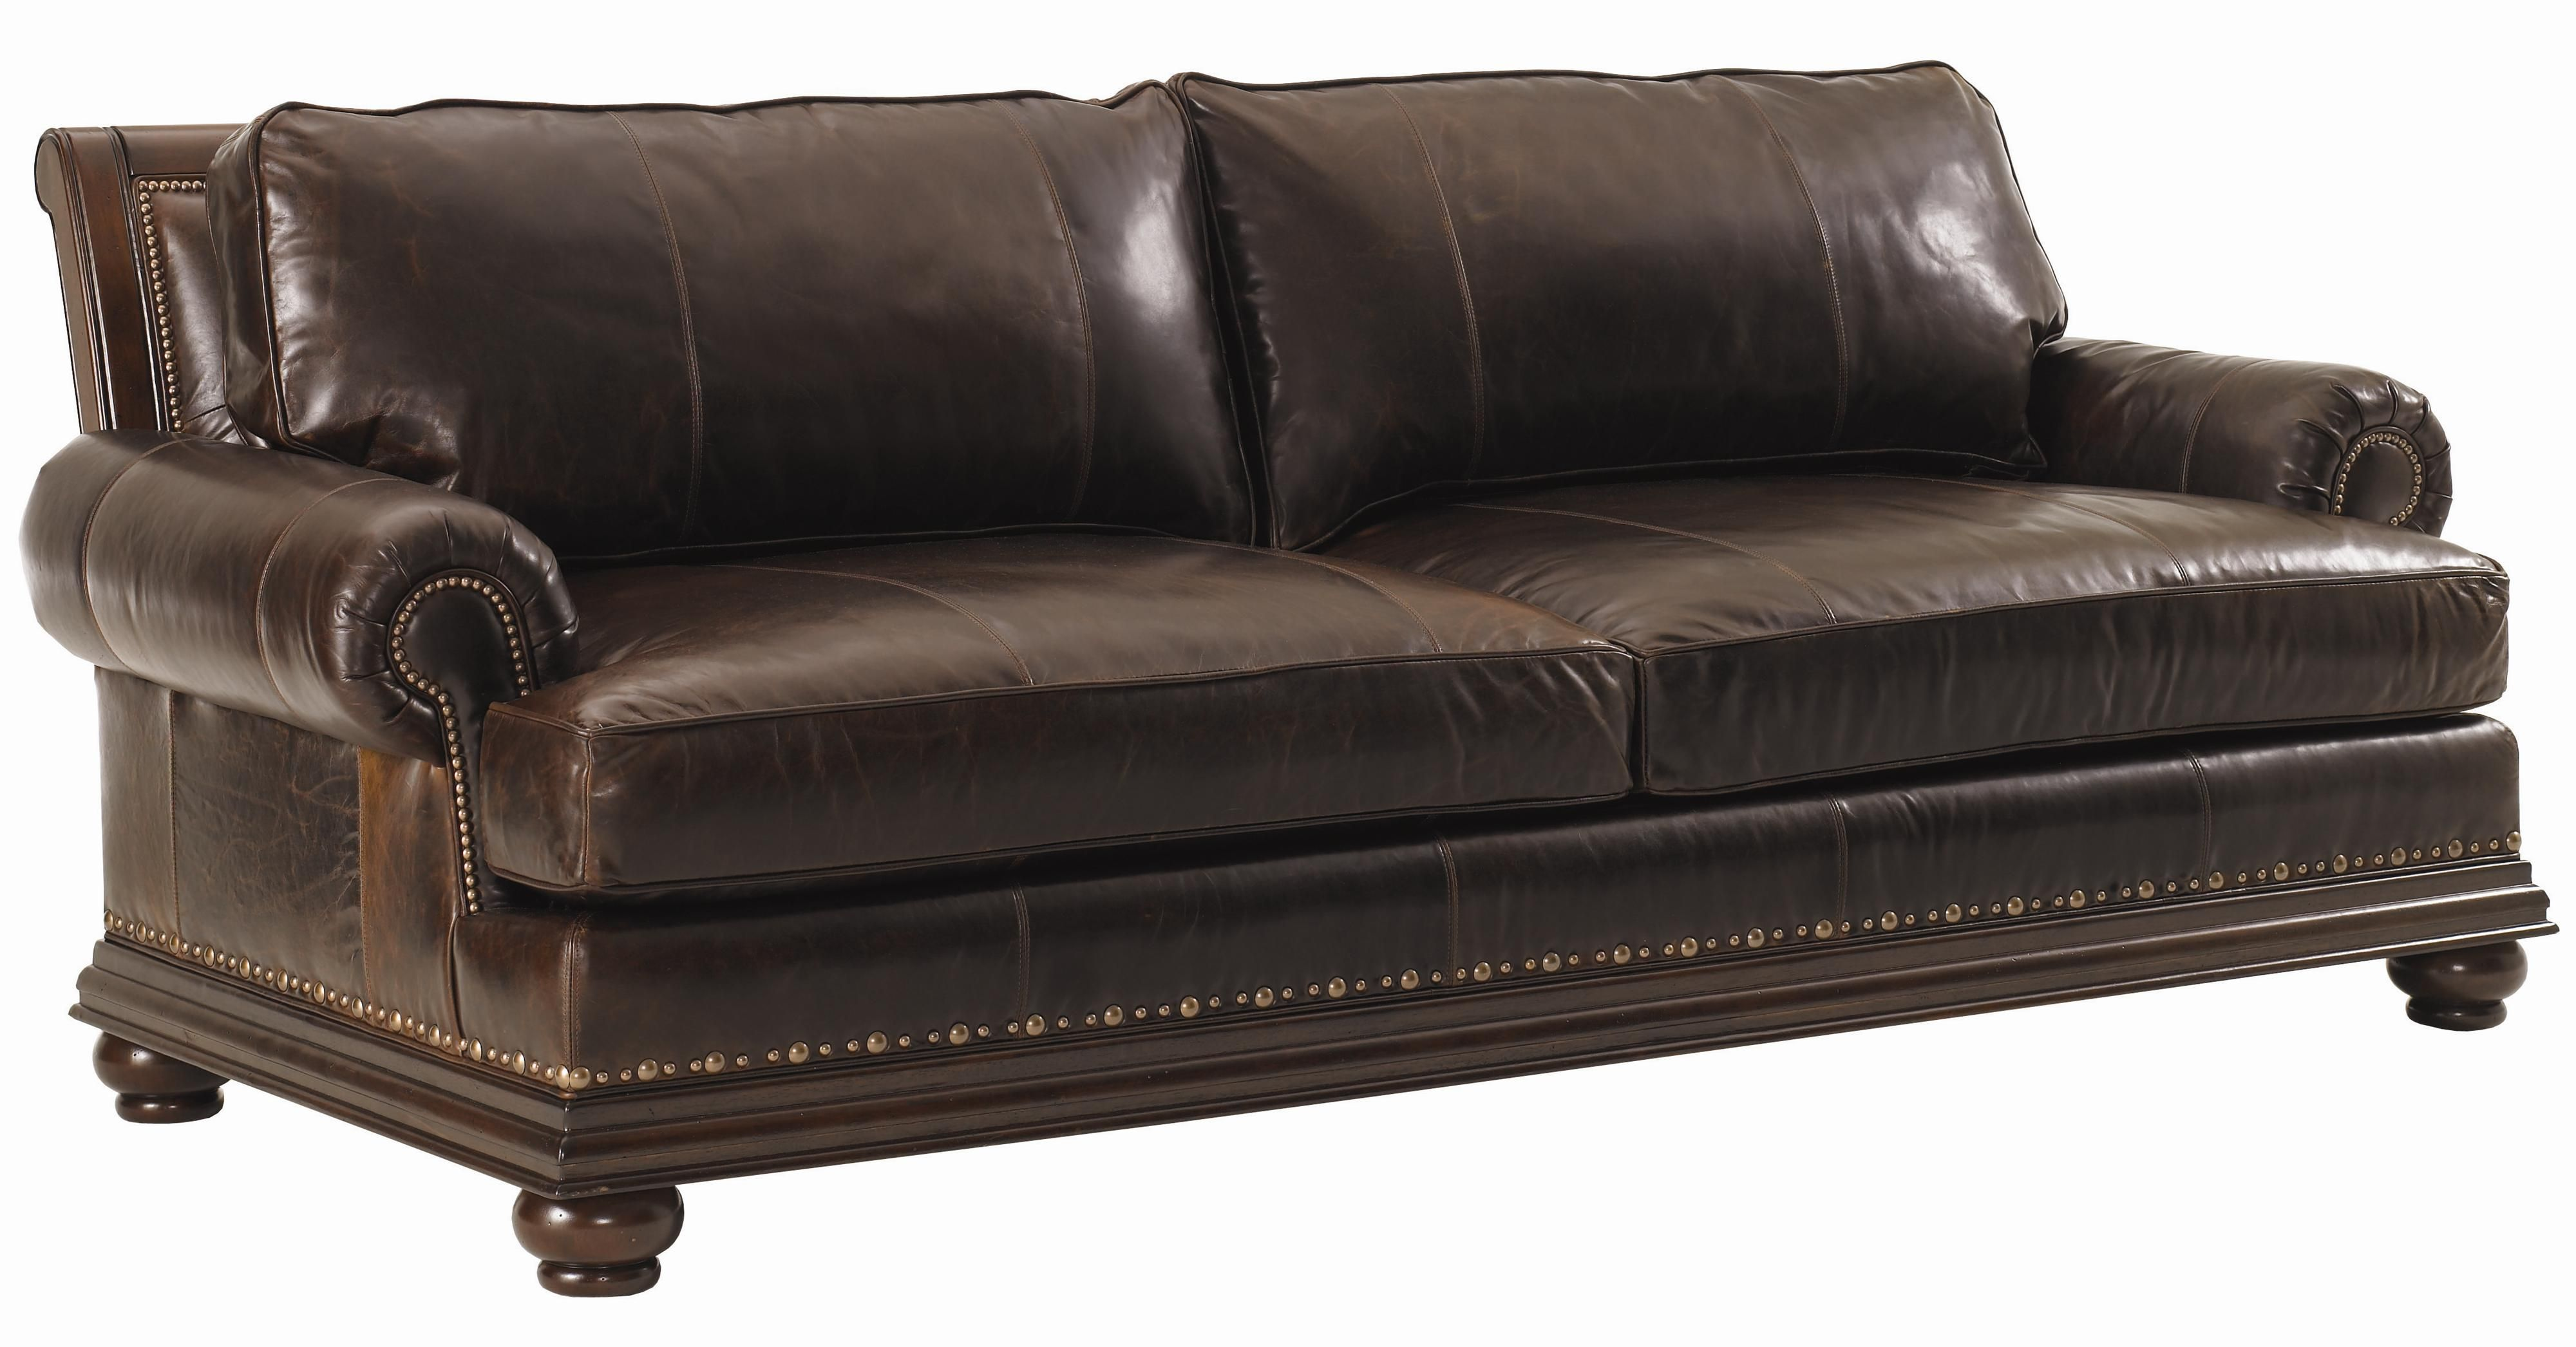 Fieldale Lodge Quick Ship Chambers Leather Sofa By Lexington Home Brands Lexington Furniture Leather Sofa Best Leather Sofa